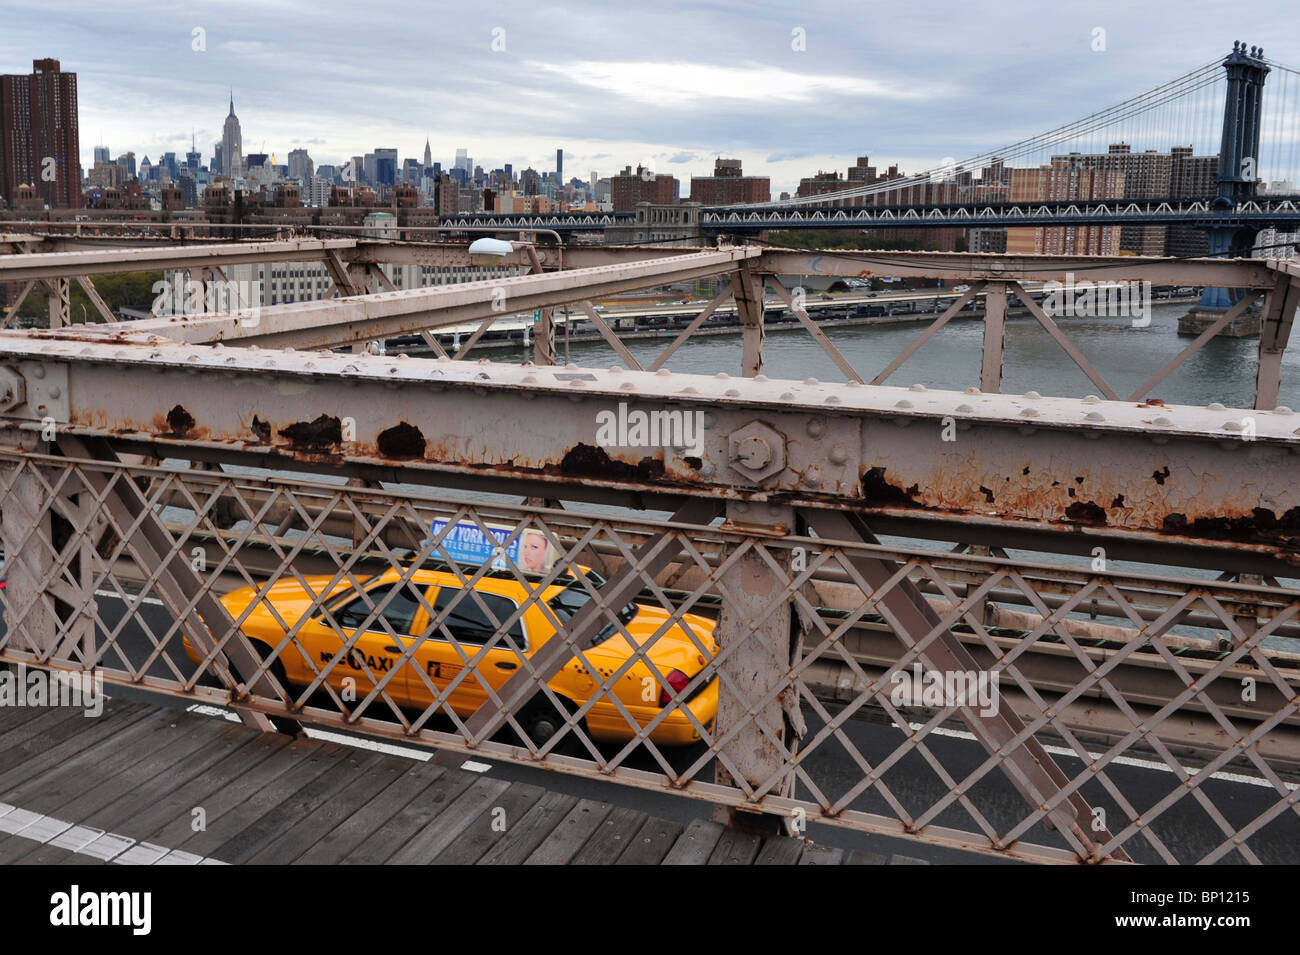 Yellow Cab Taxi-New York City Taxicabs - Stock Image